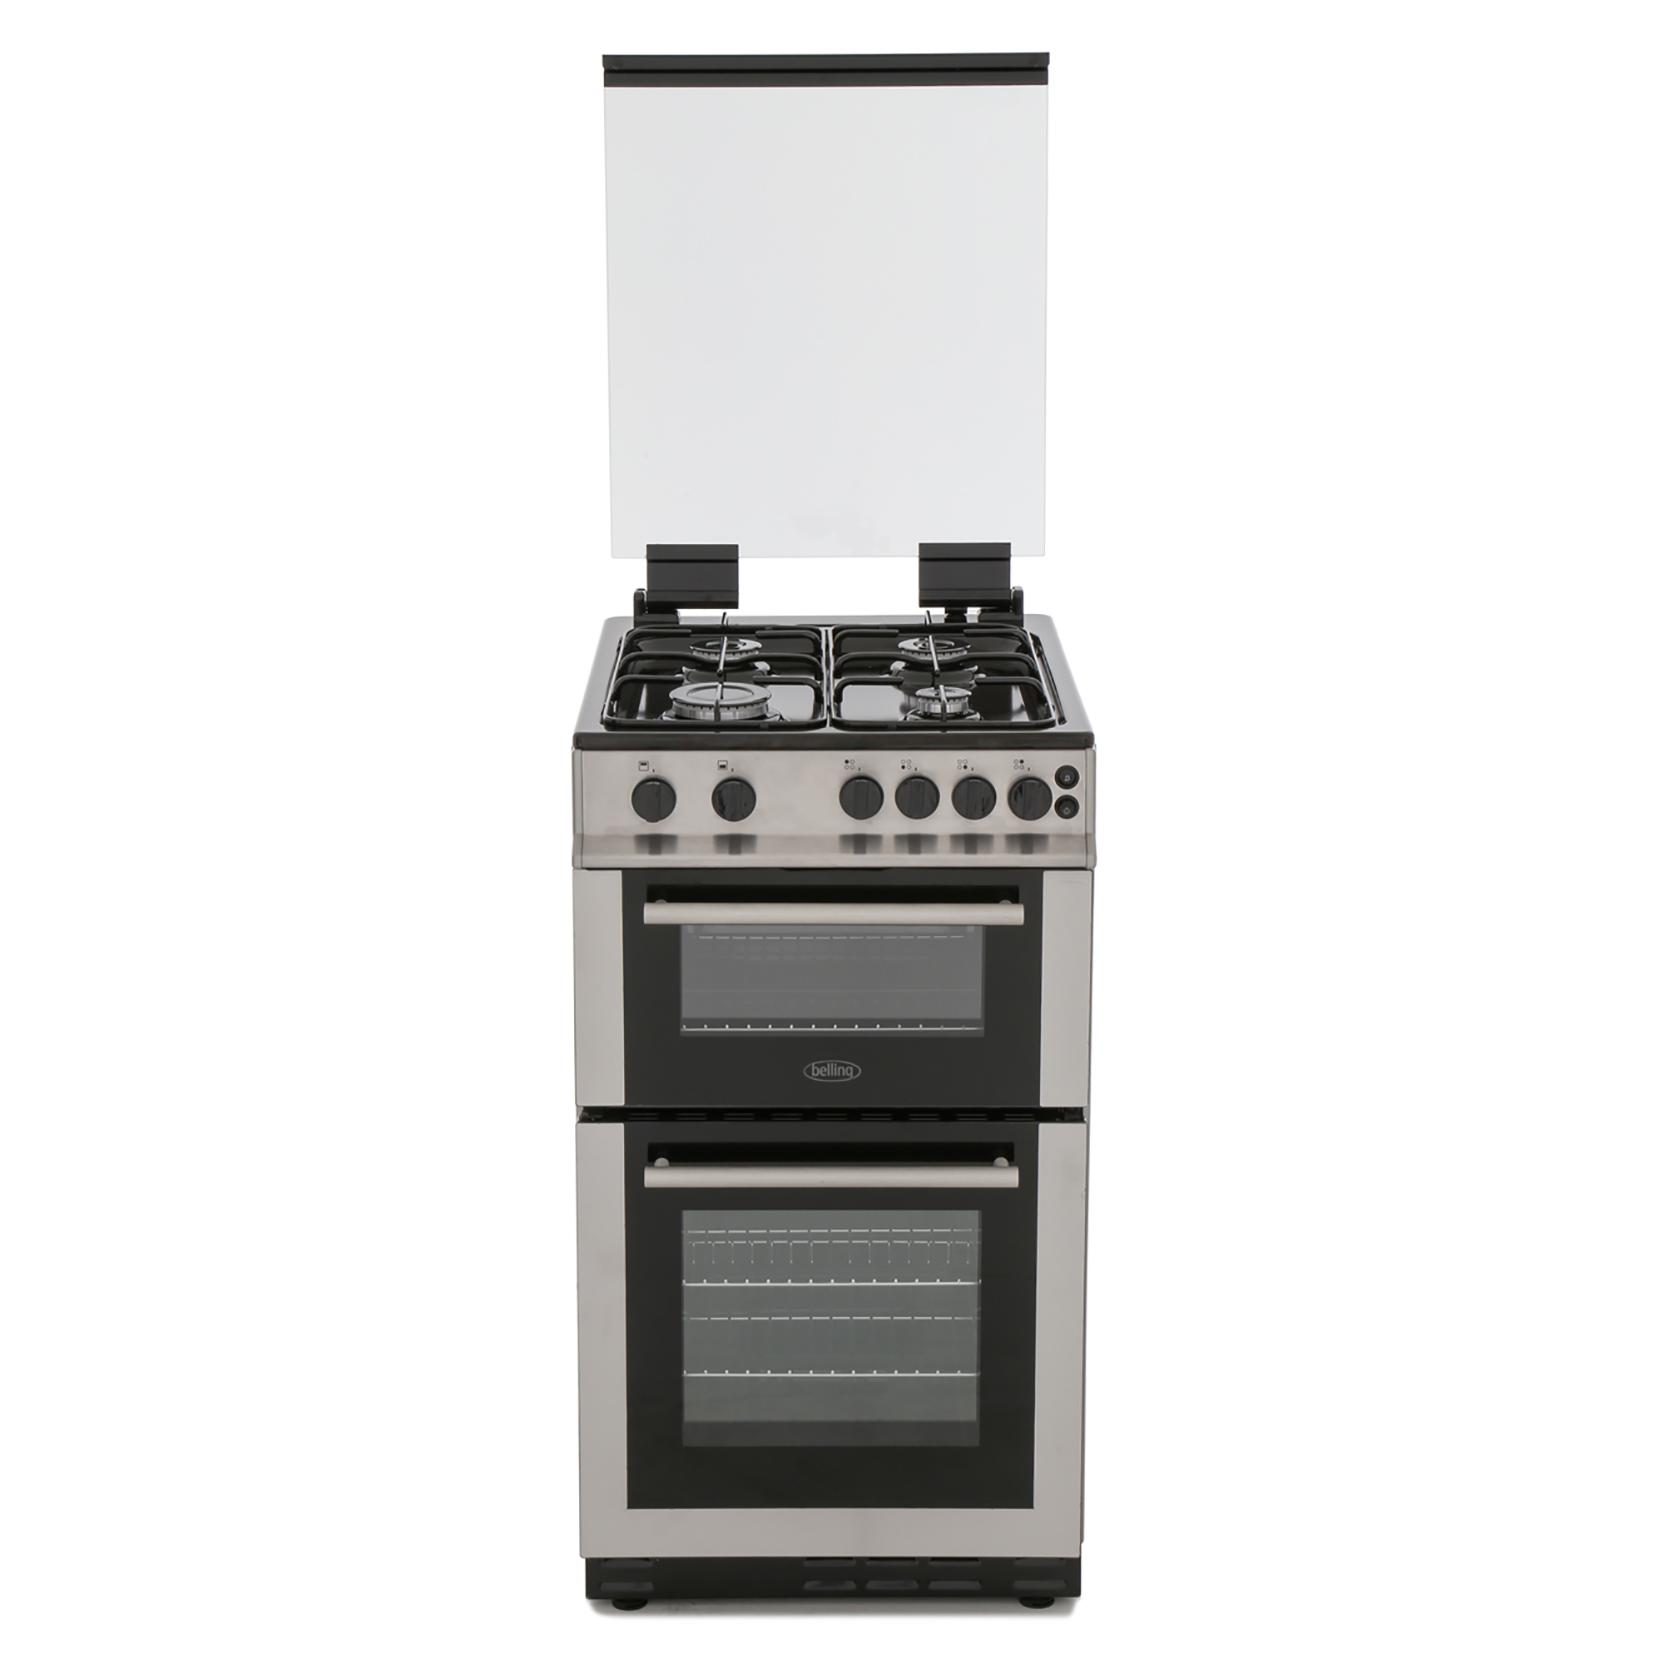 Belling FS50GTCL Stainless Steel Gas Cooker Separate Grill